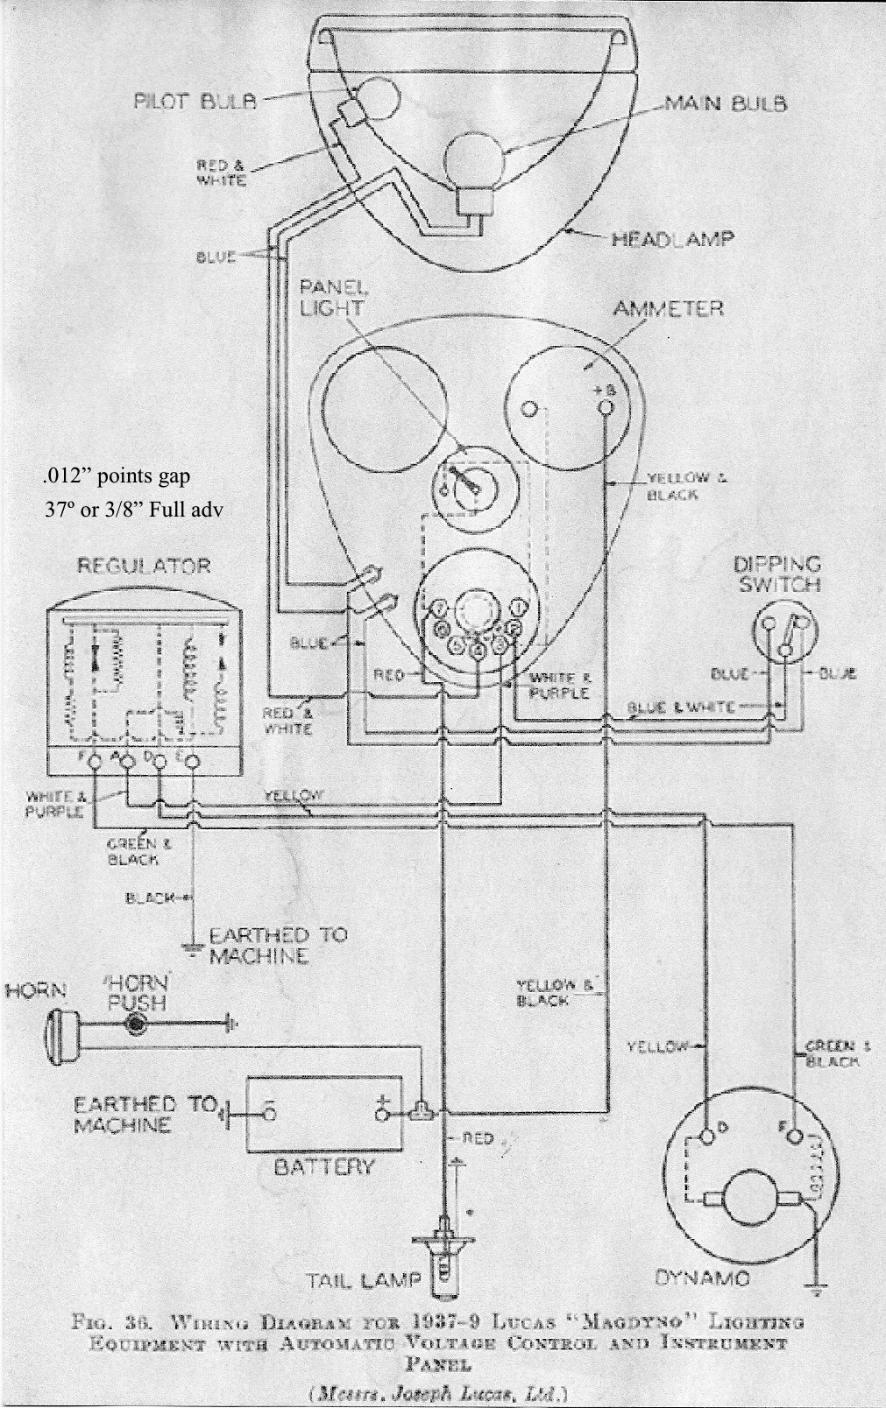 hight resolution of triumph cub wiring diagram wiring diagram ame1960 triumph wiring diagram wiring diagram name triumph cub wiring